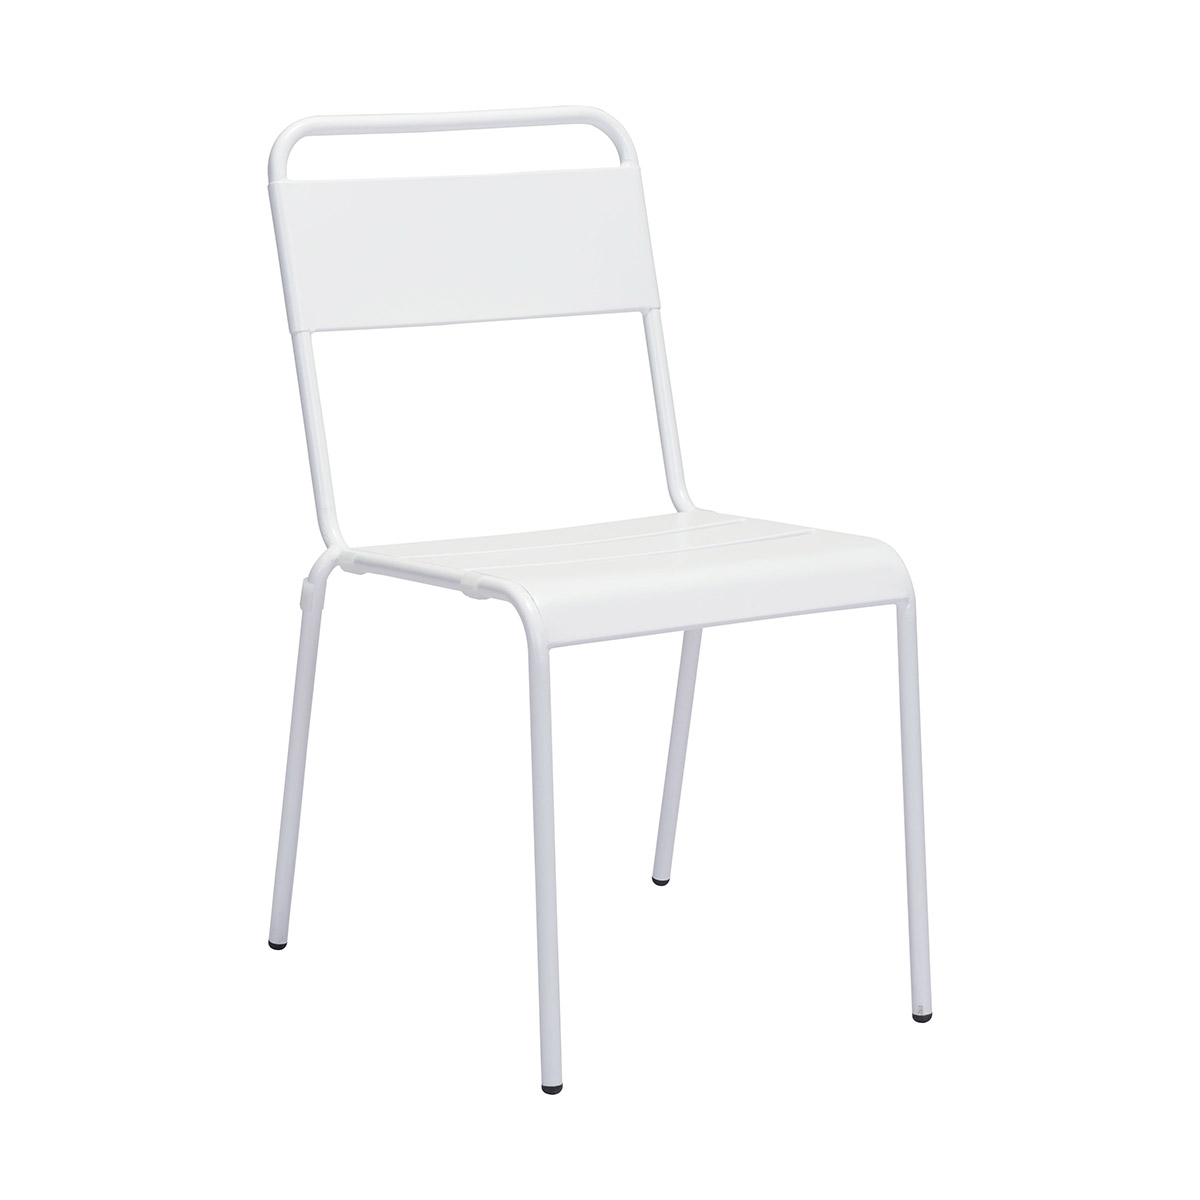 Zuo Oh Outdoor Dining Chair in White